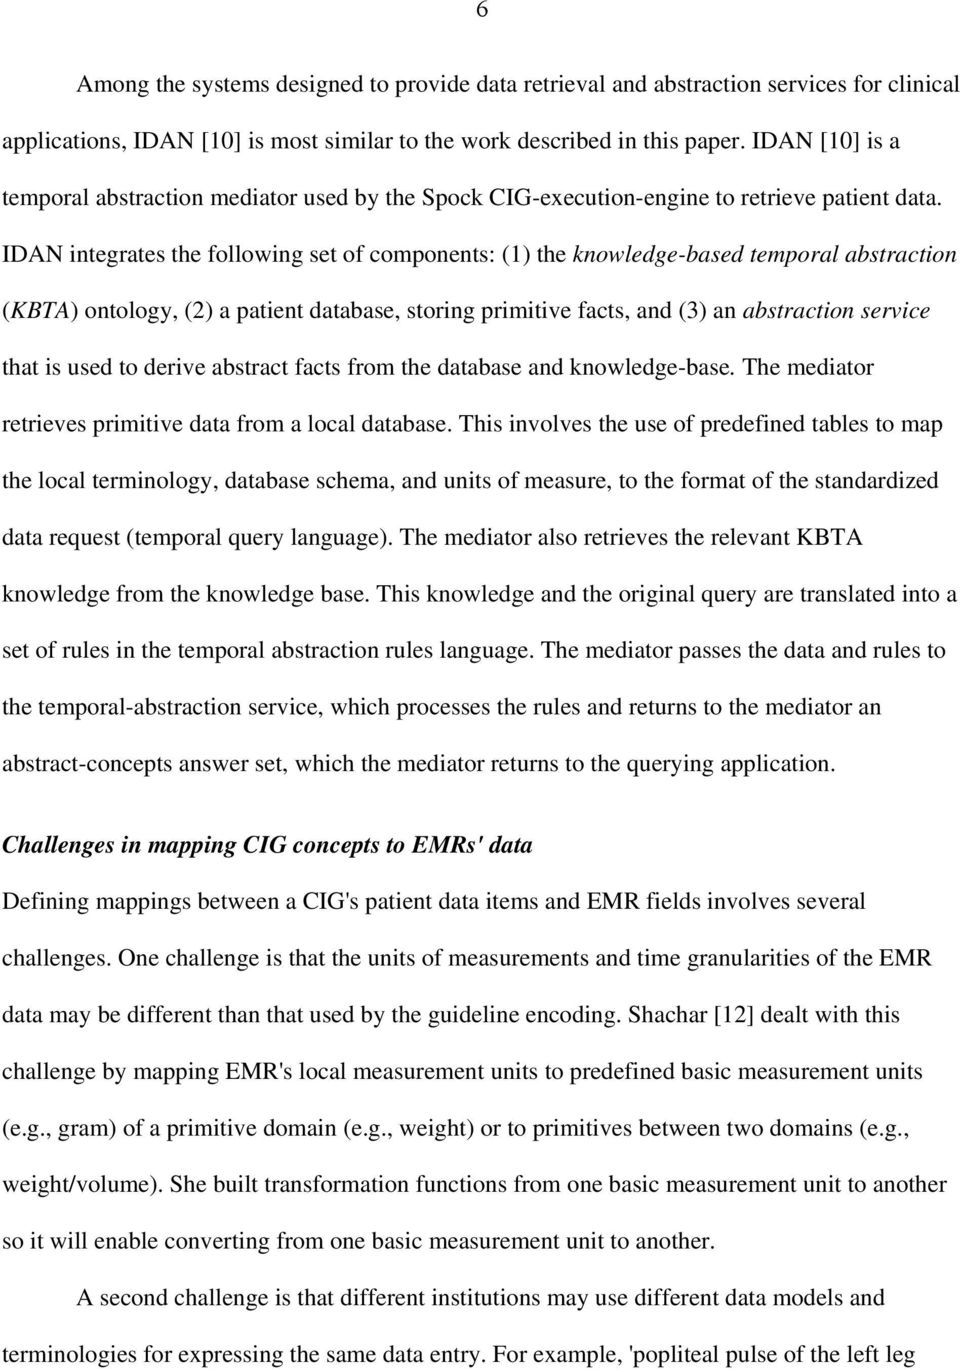 IDAN integrates the following set of components: (1) the knowledge-based temporal abstraction (KBTA) ontology, (2) a patient database, storing primitive facts, and (3) an abstraction service that is